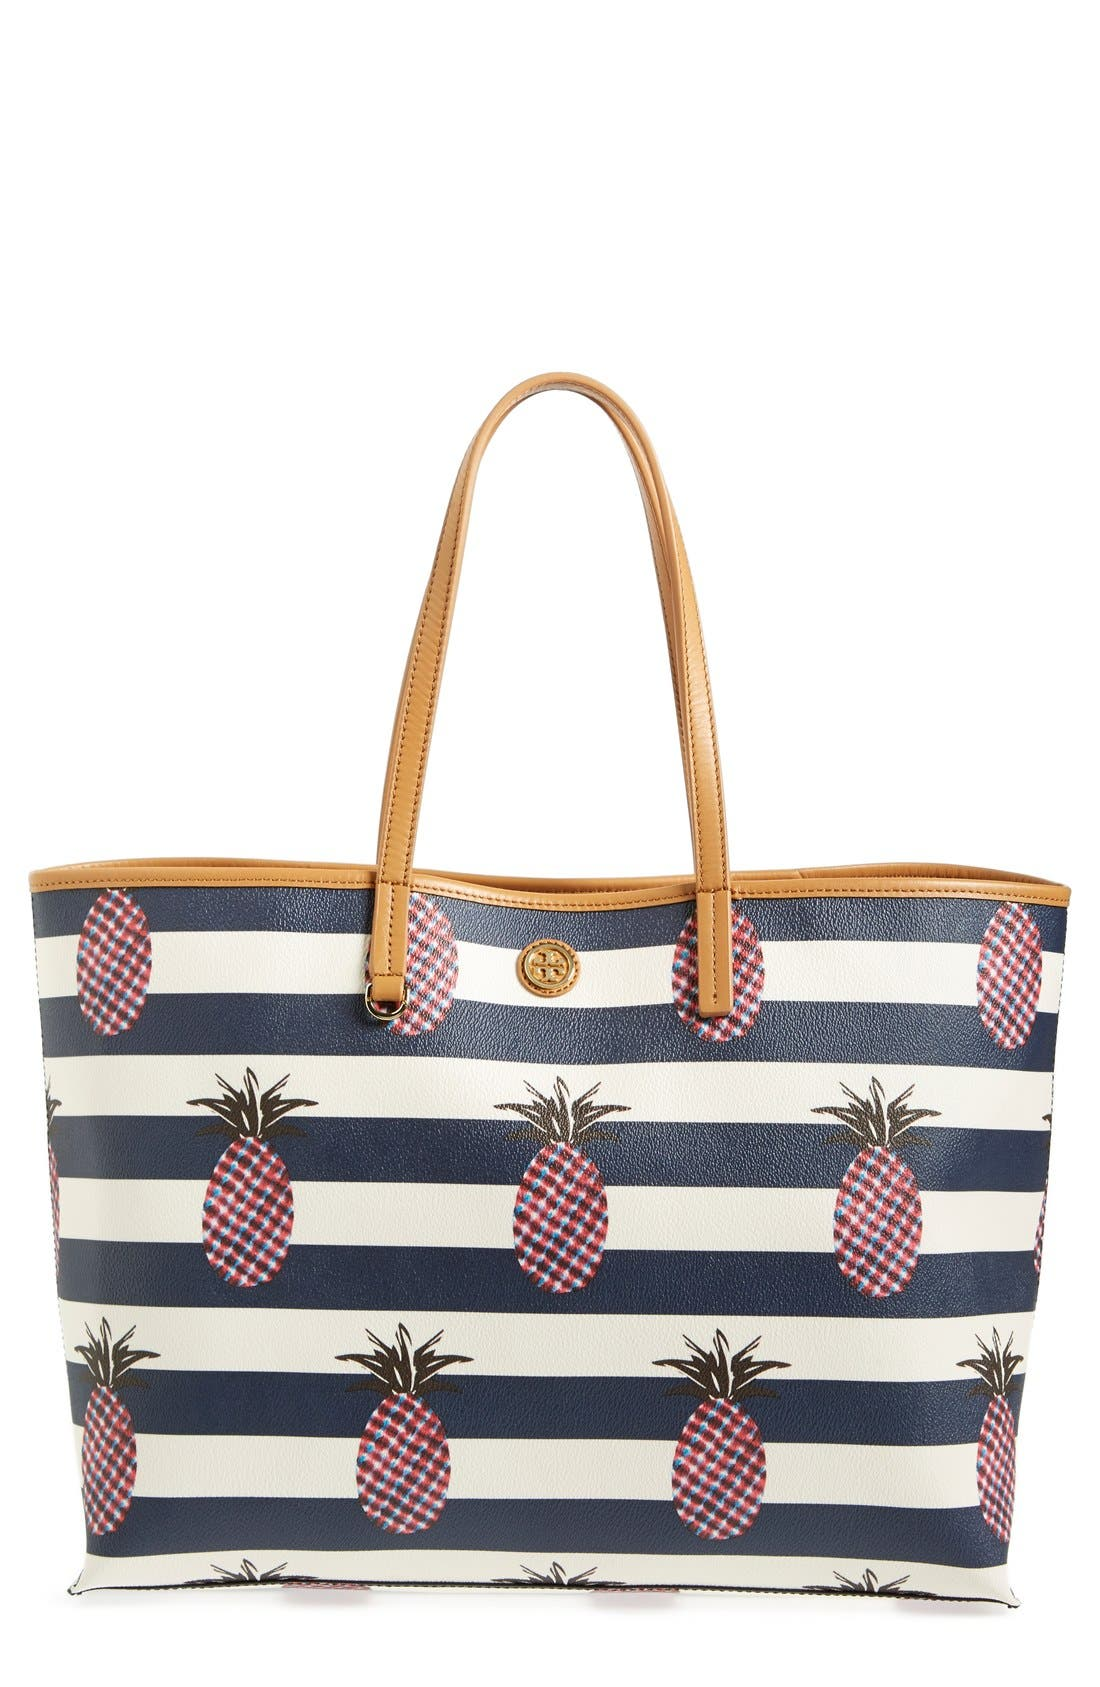 Main Image - Tory Burch 'Kerrington Square' Tote